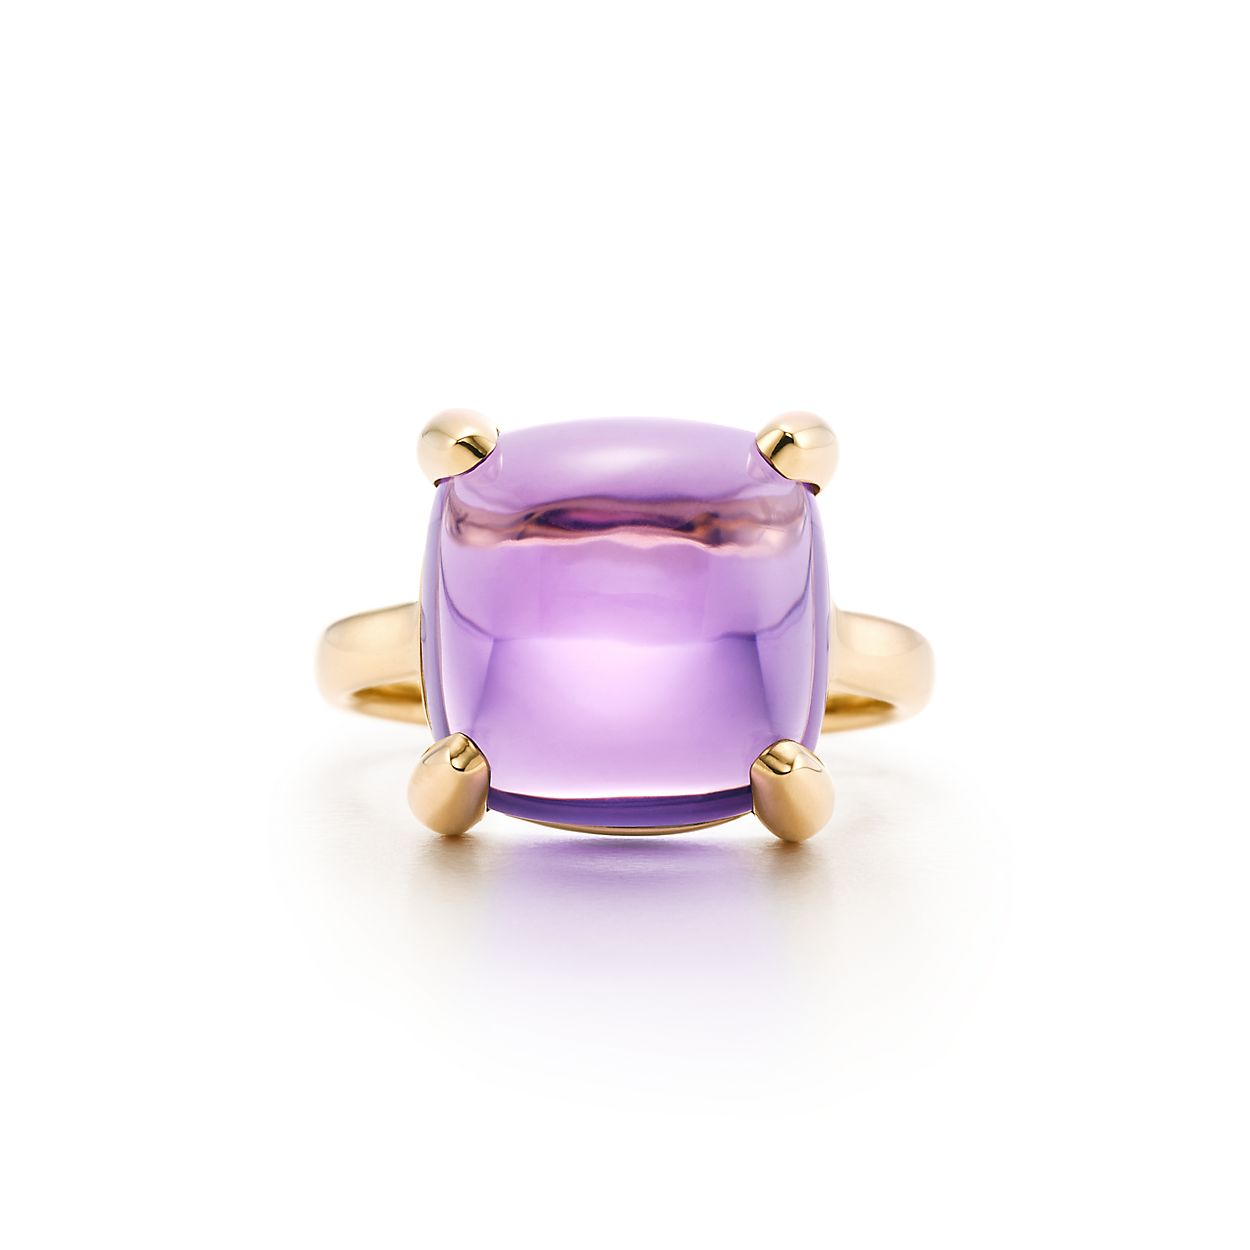 Palomas Sugar Stacks ring in 18k gold with an amethyst - Size 5 Tiffany & Co. 2Gu5d9nu